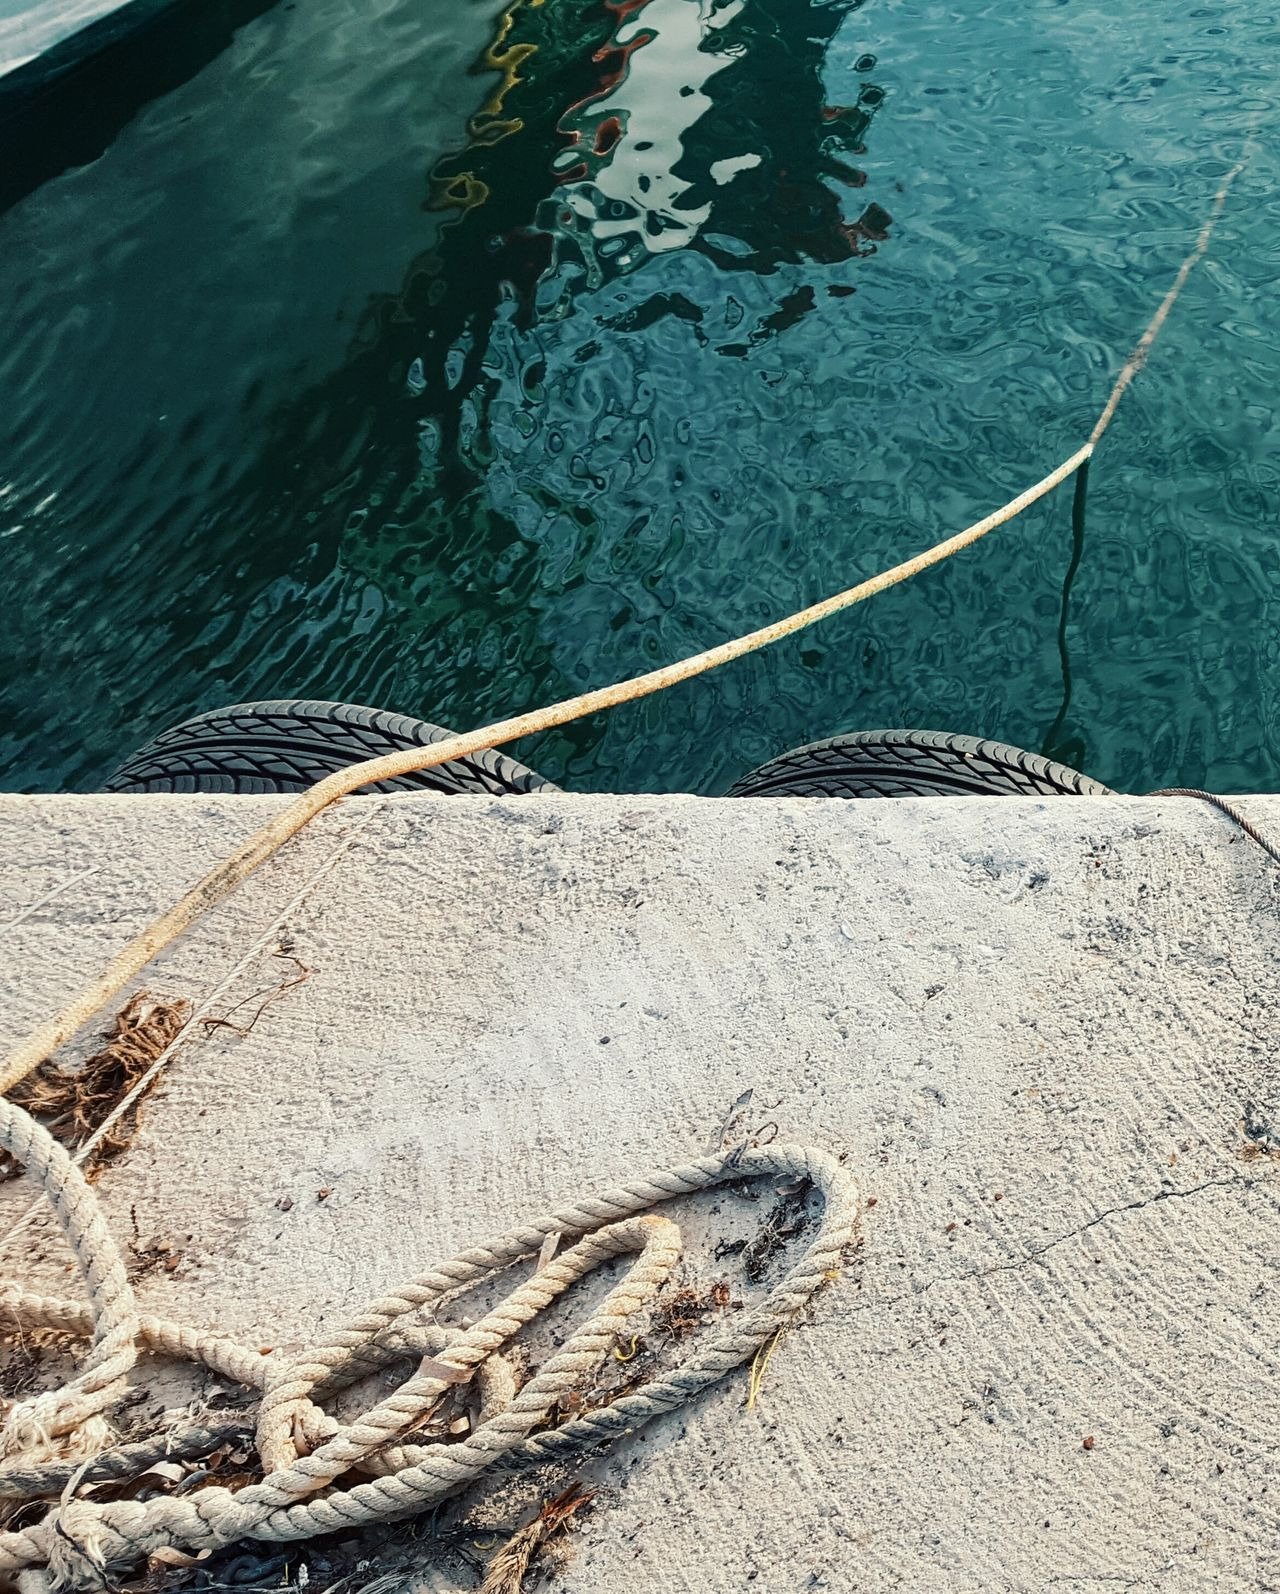 StillLifePhotography Ropes Seawater At The Port Saltiness Still Life Where Does It Lead? Seaside Seascape View From Above Rope Ropeway Ropeswing  Textures And Surfaces